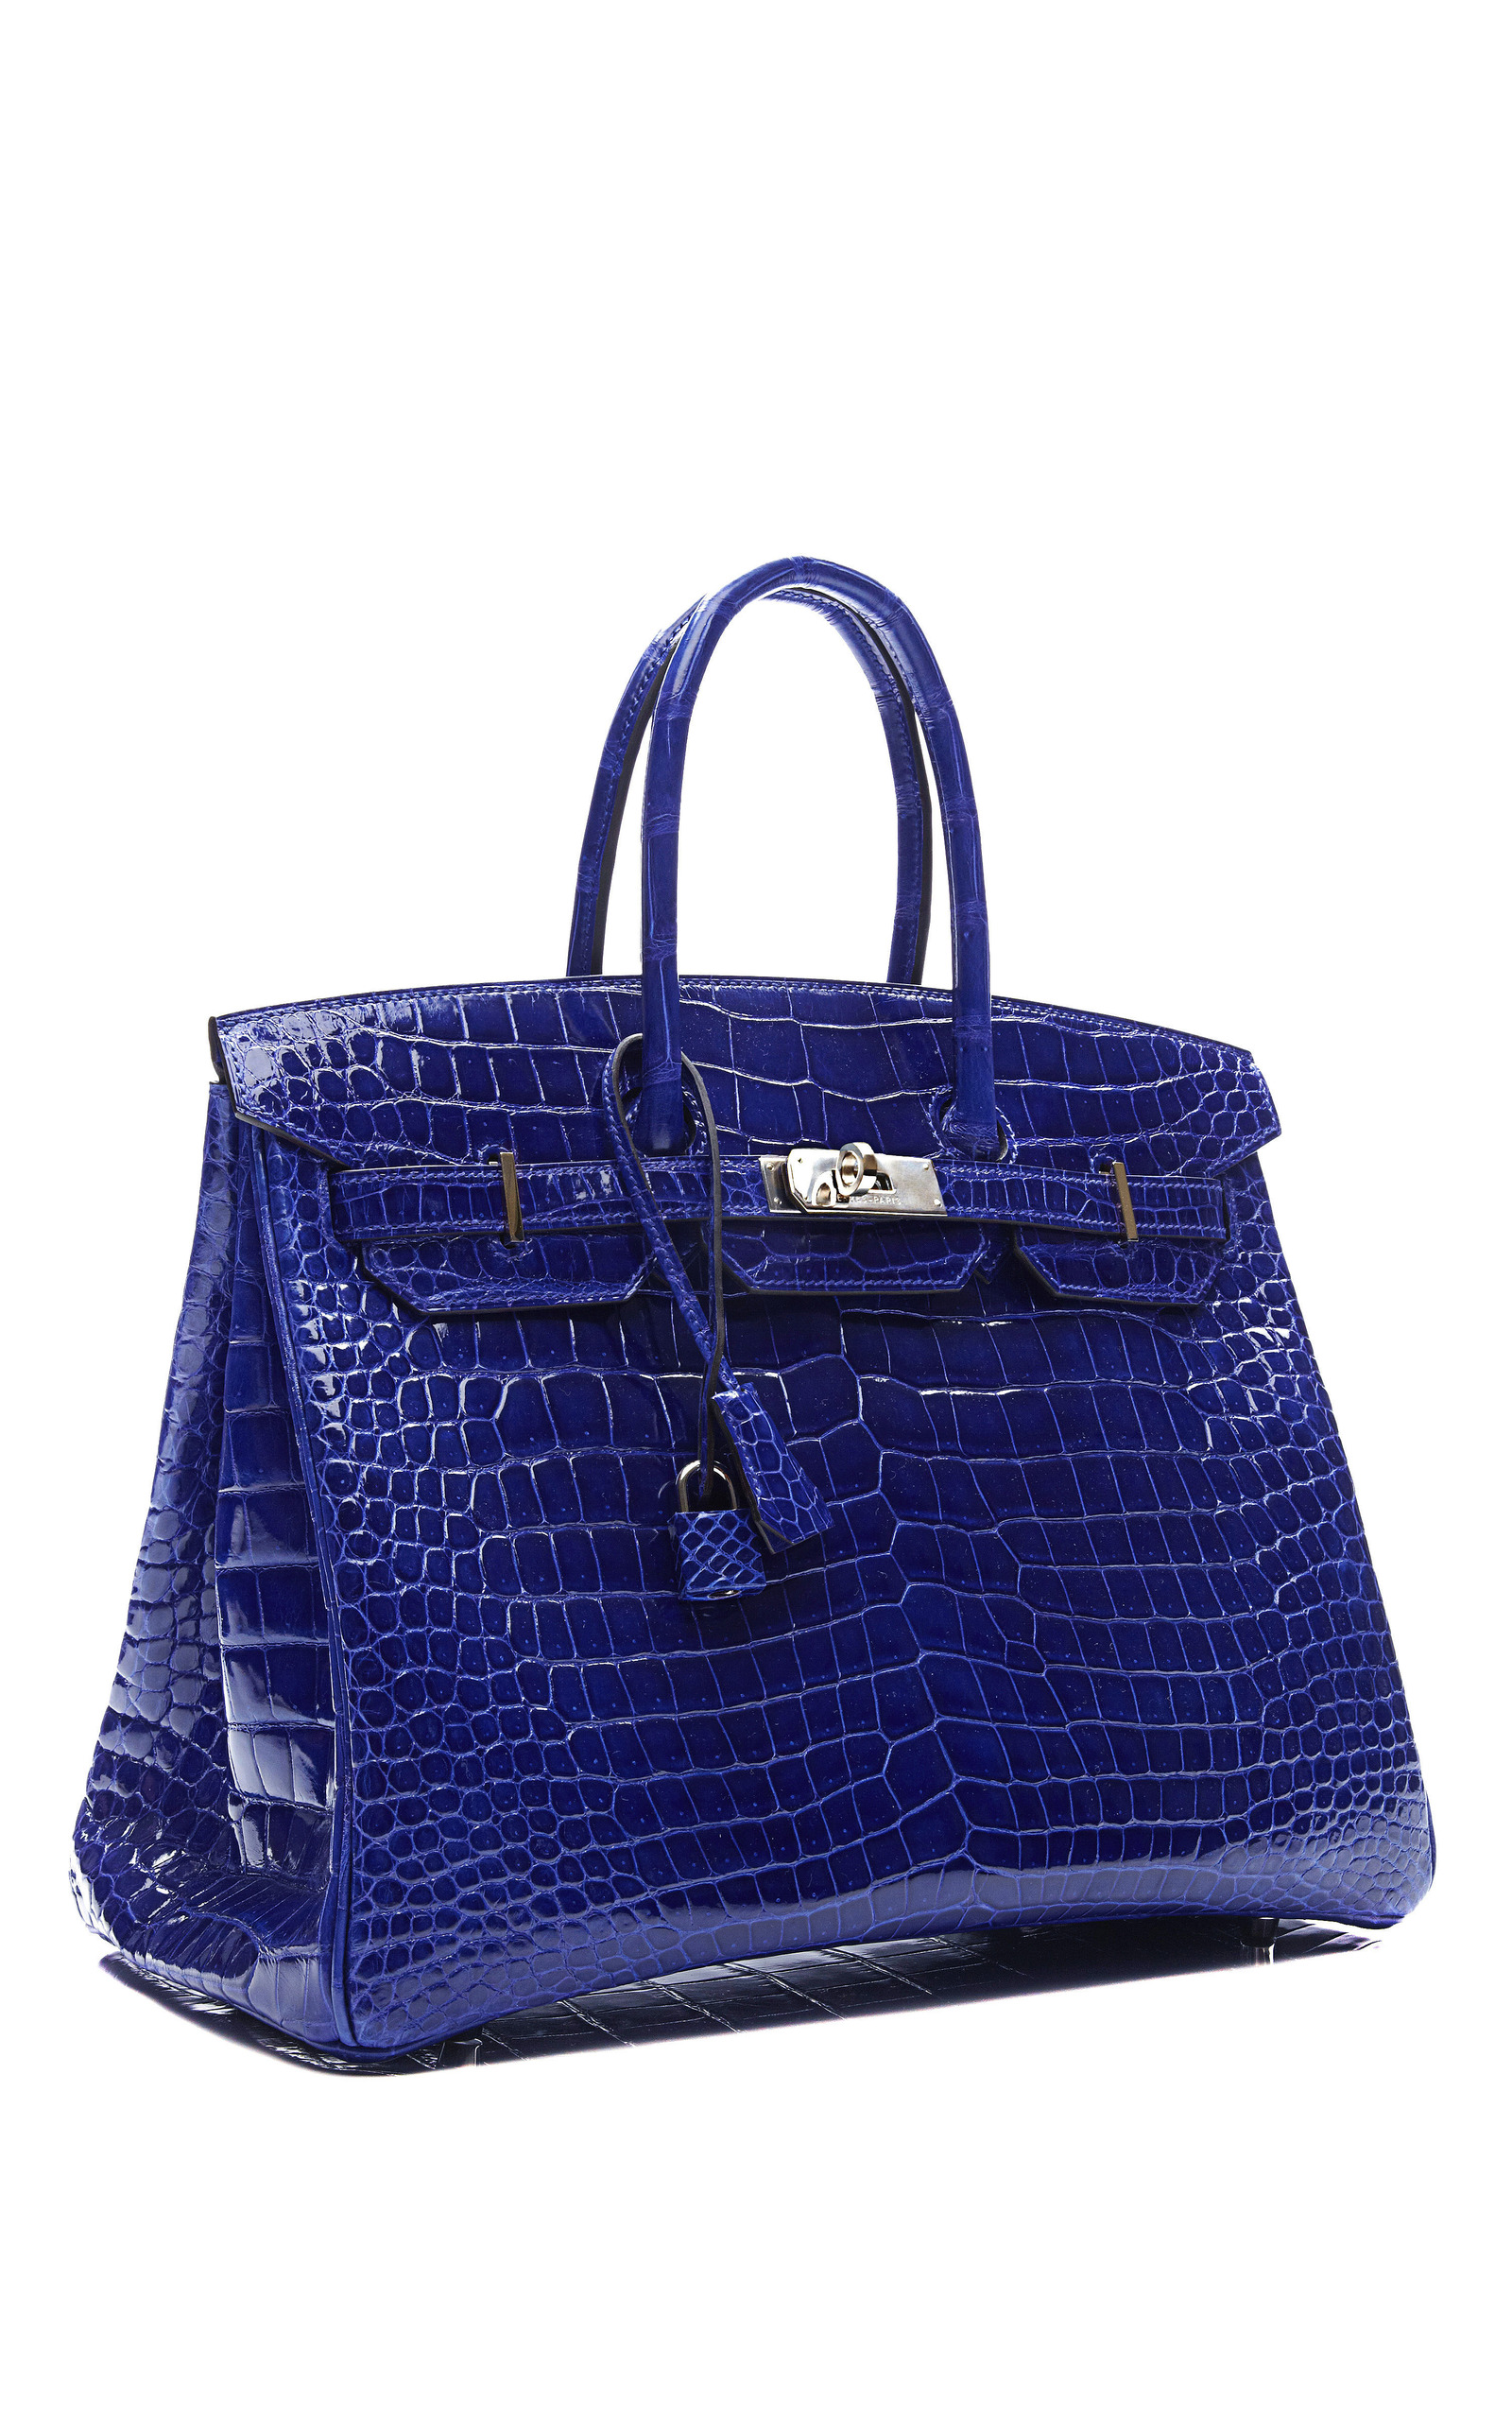 35Cm Shiny Electric Blue Porosus Crocodile Birkin by  011194344